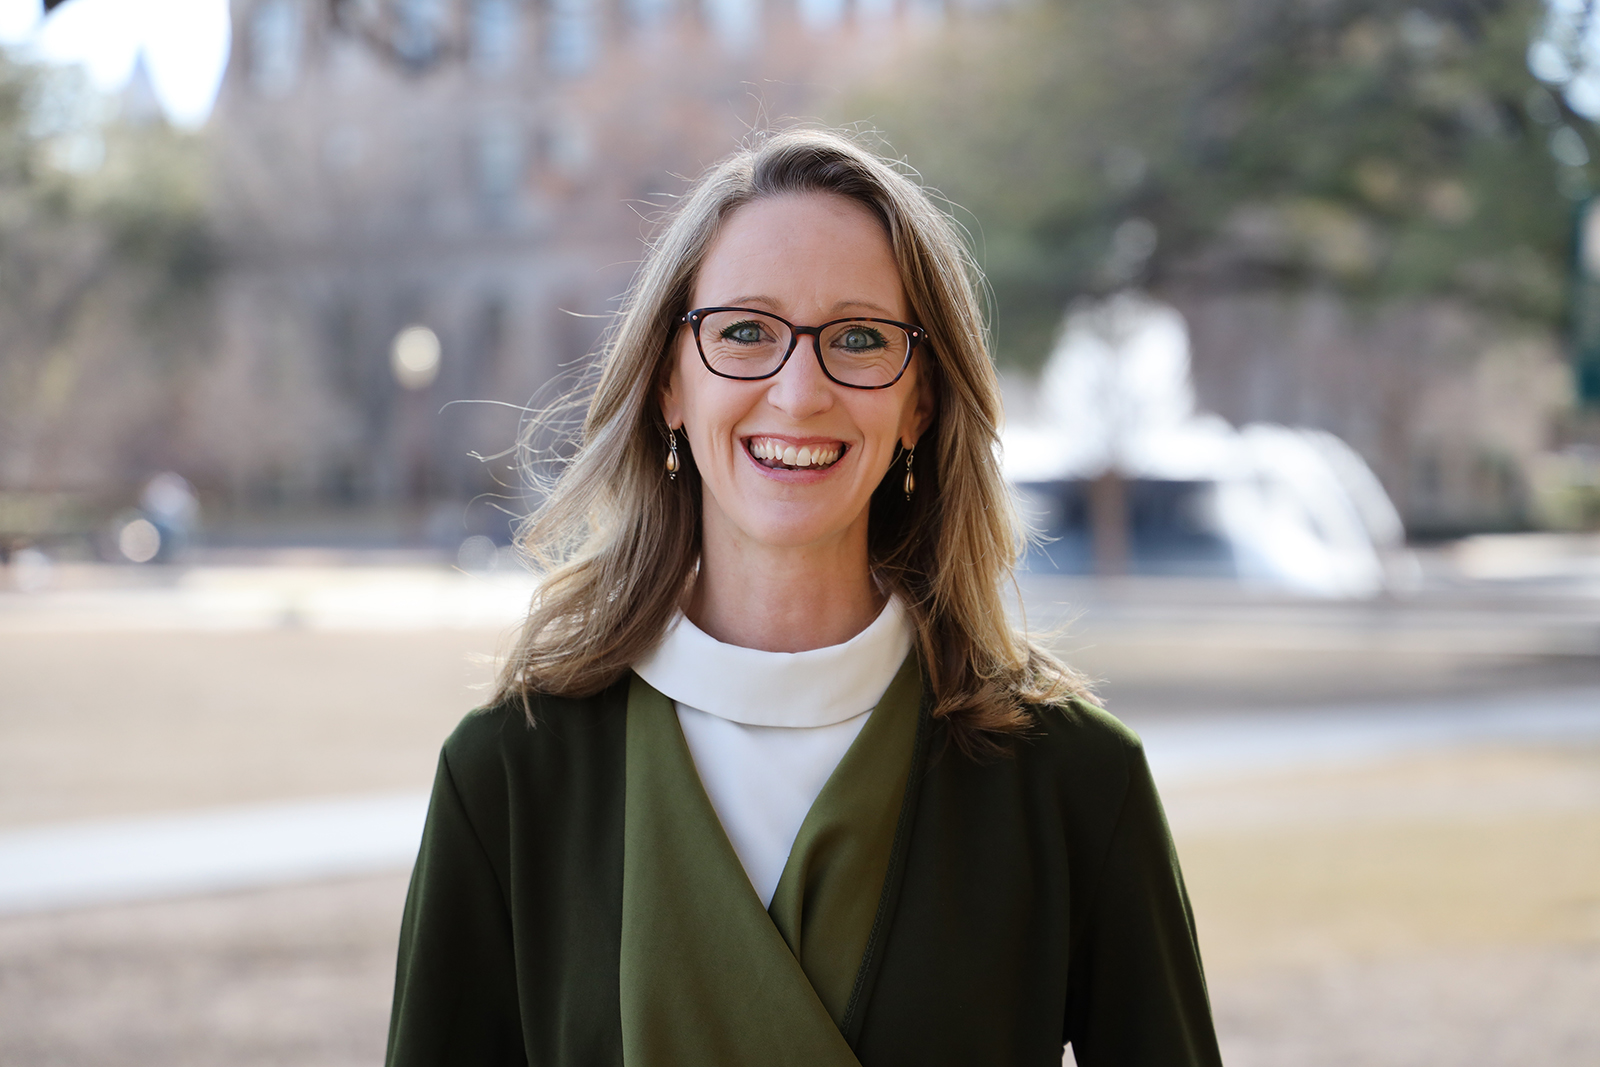 Emily Smith in 2019. Photo by Robert Rogers/© 2019 Baylor University